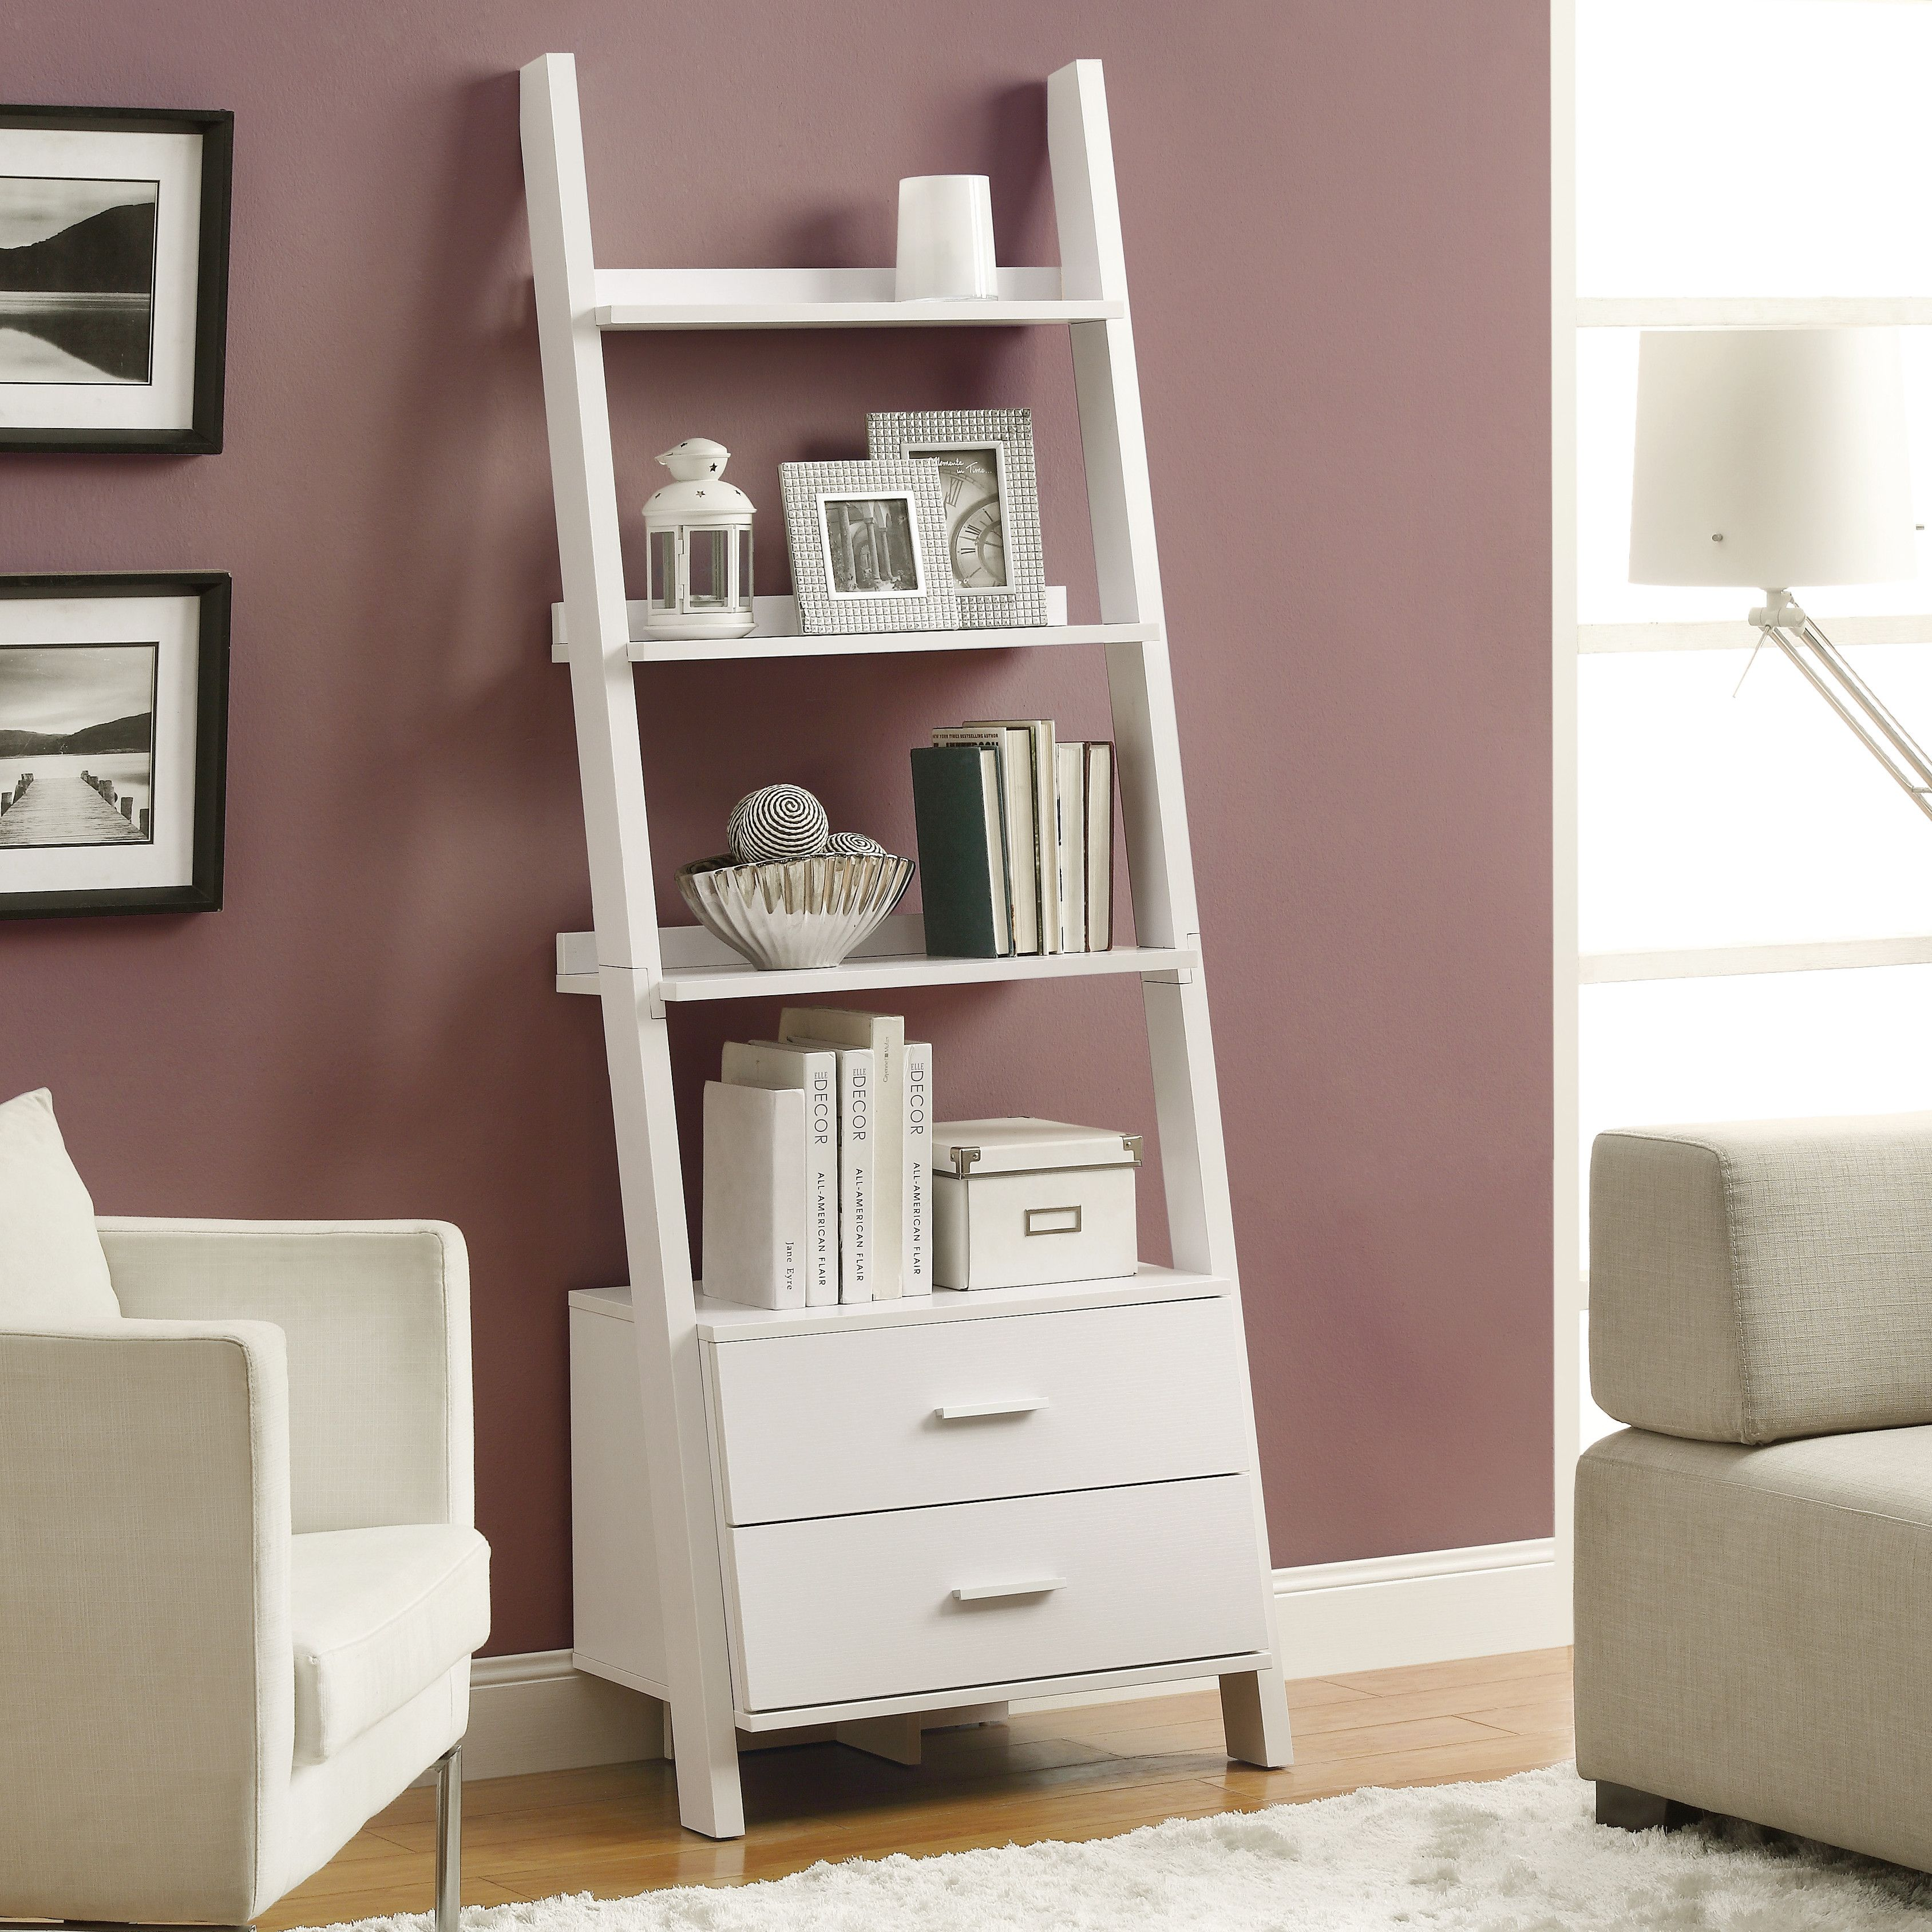 Features material particle board mdf with storage drawers